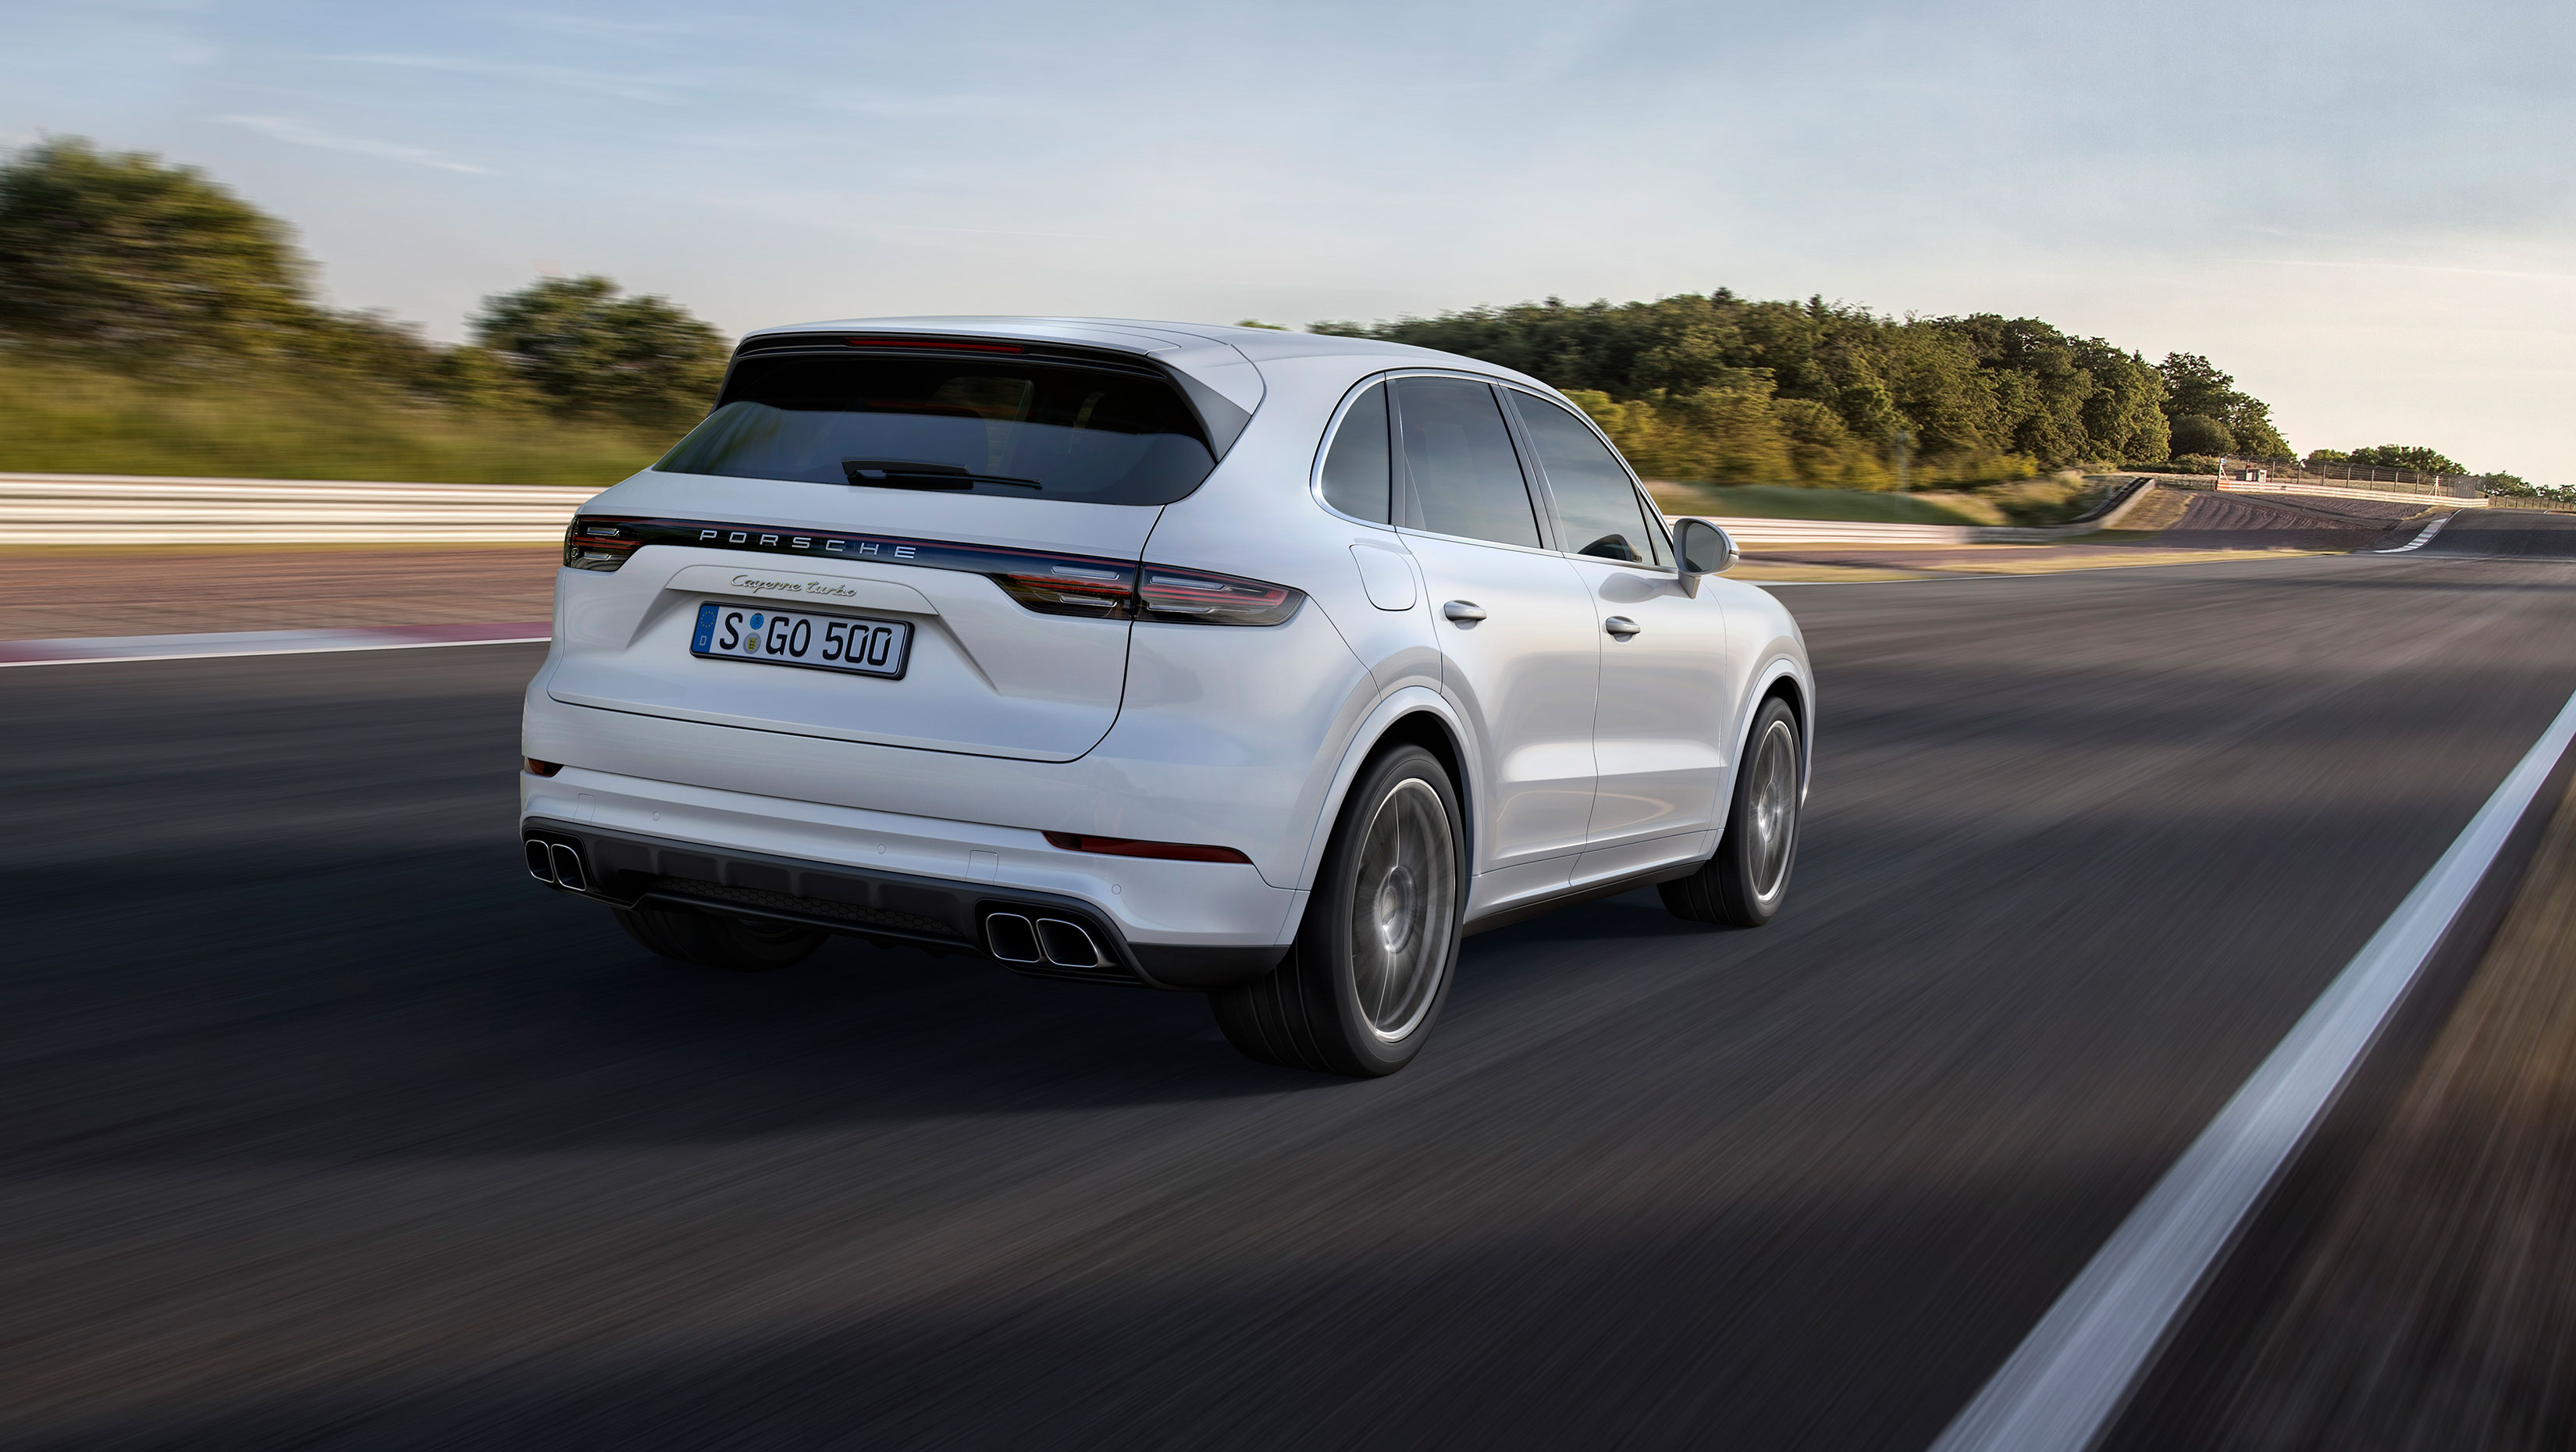 new porsche cayenne turbo unveiled with active aero and 542 hp. Black Bedroom Furniture Sets. Home Design Ideas